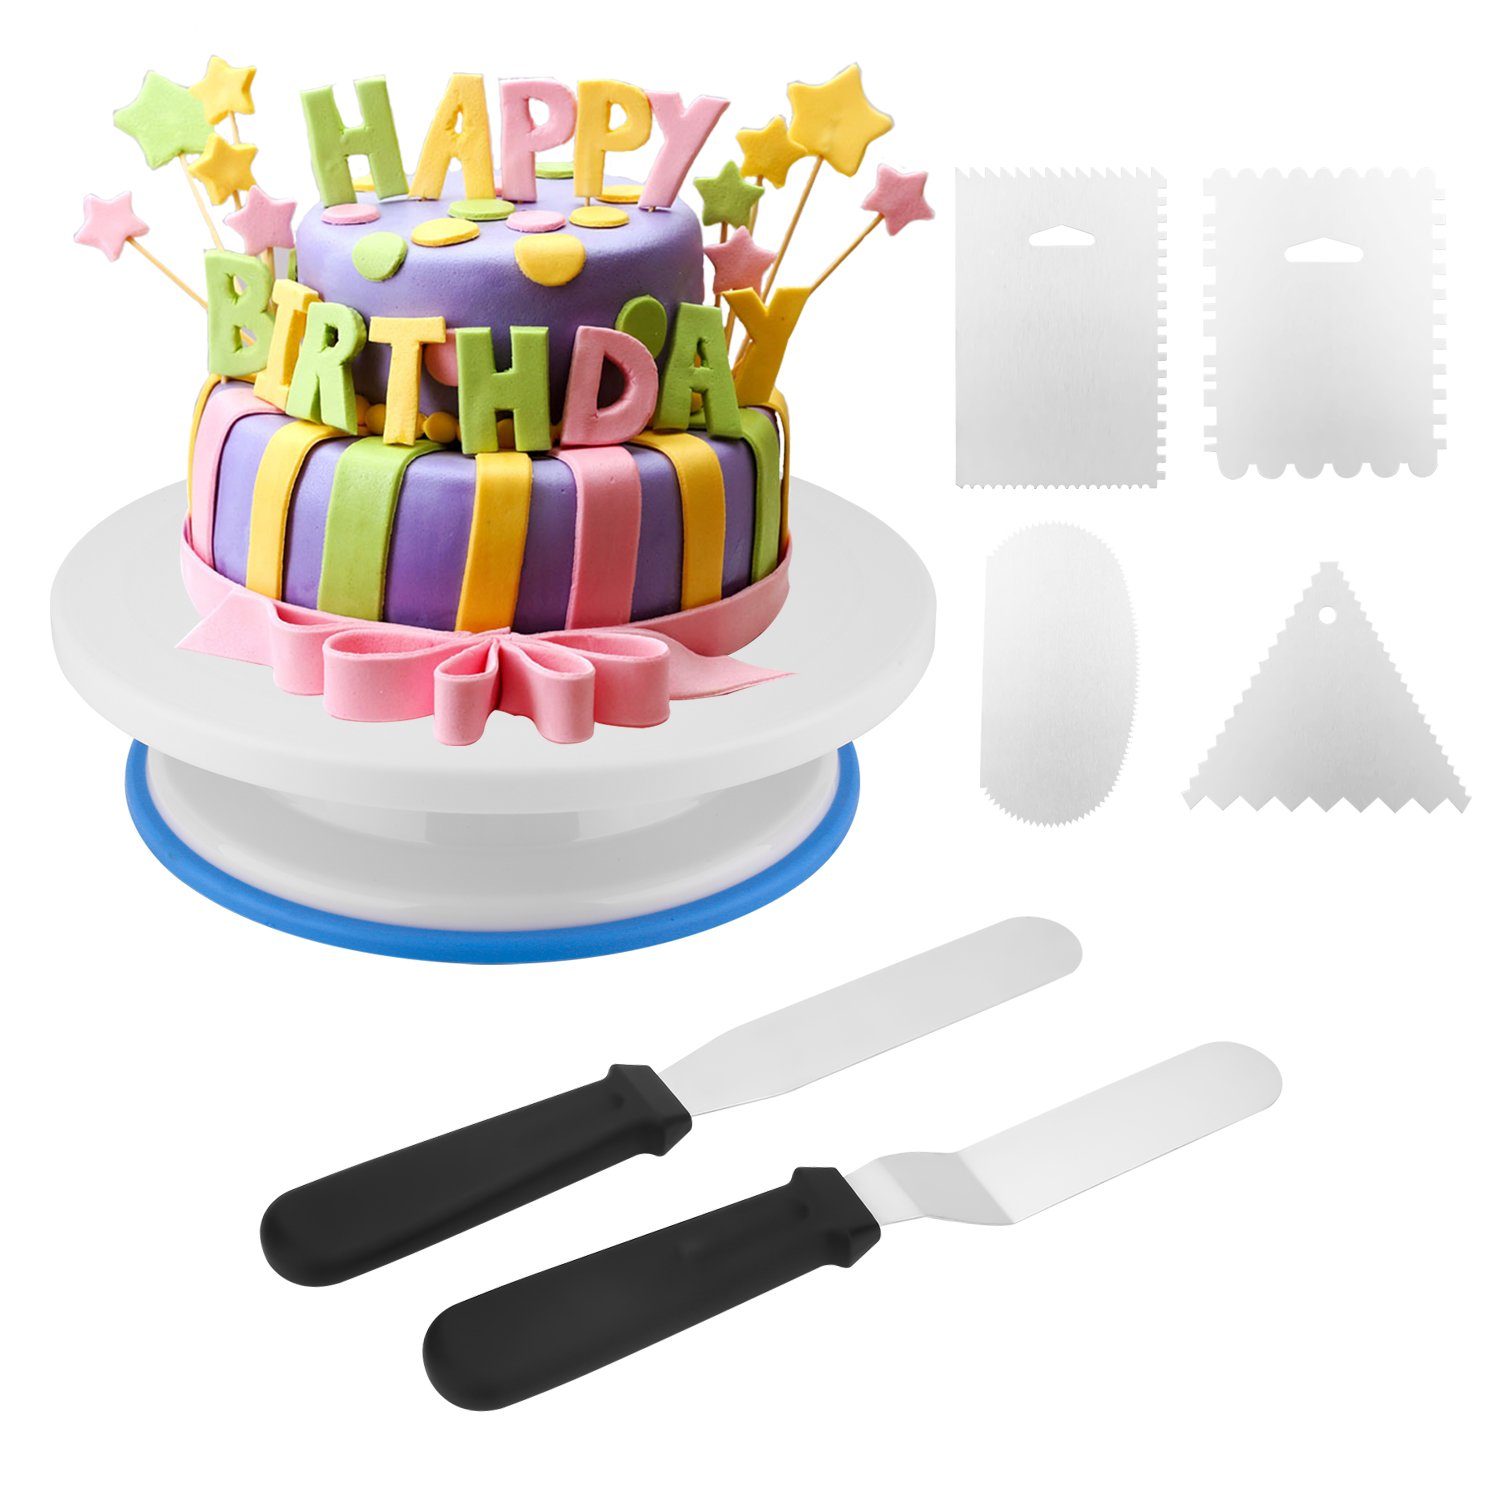 Cake Decorating Turntable, Zoegate Cake Plate Rotating Decorating Turntable Supplies with 4Pcs Metal Decorating Comb/Icing Smoother + 2 Pcs Icing Spatulas with Sided & Angled for Cakes, Pies, and Tarts